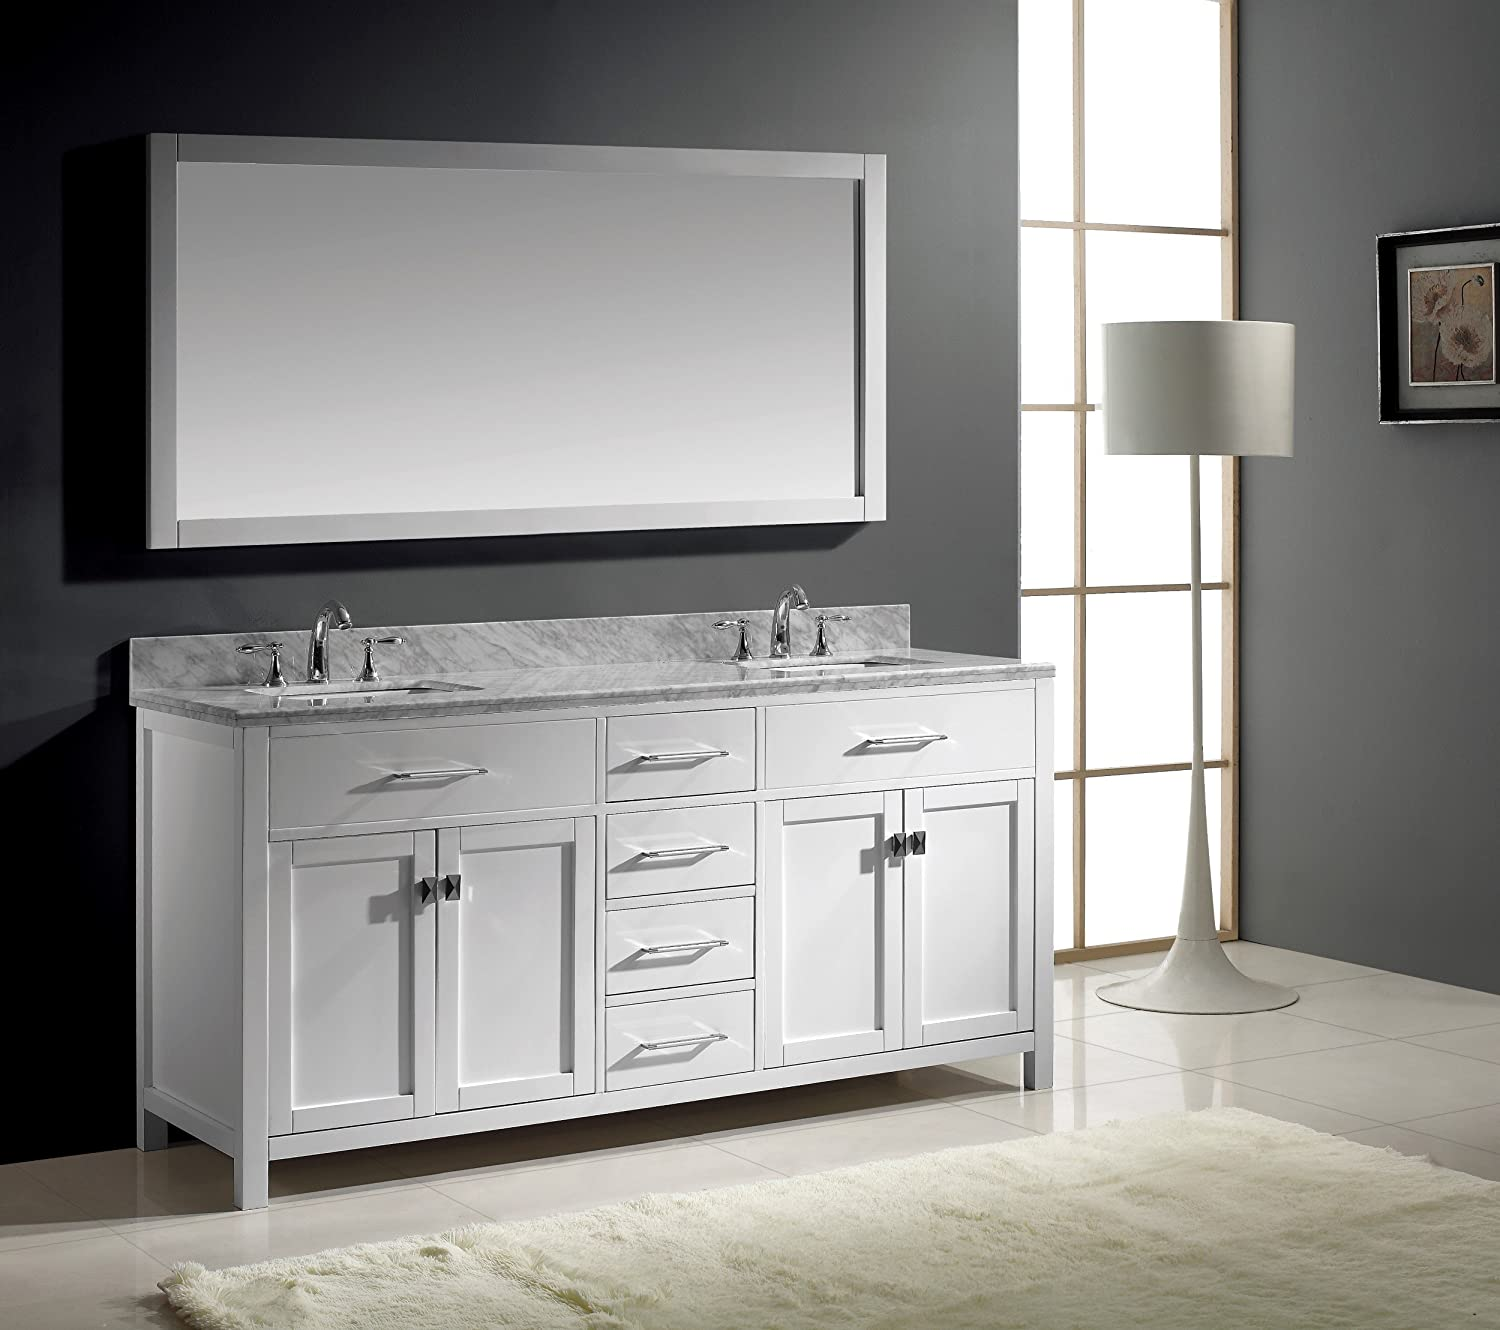 Virtu USA MD 2072 WMSQ WH Caroline 72 Inch Bathroom Vanity With Double  Square Sinks In White And Italian Carrera White Marble   Double Vanity With  Marble ... Part 39